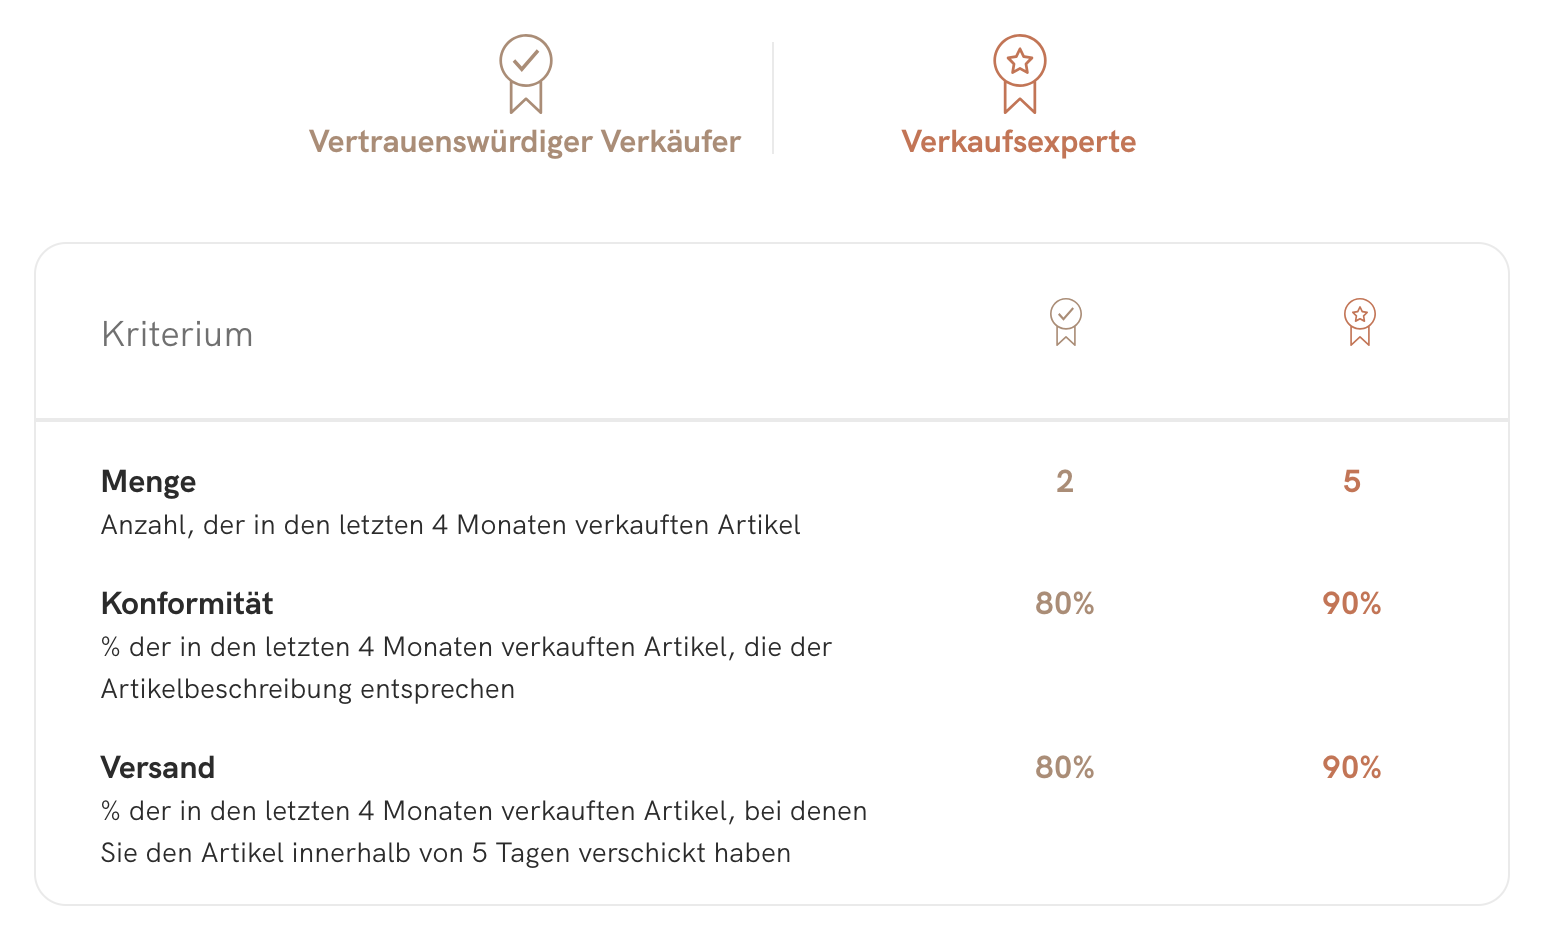 SellerRating_BadgesDetails_DE.png